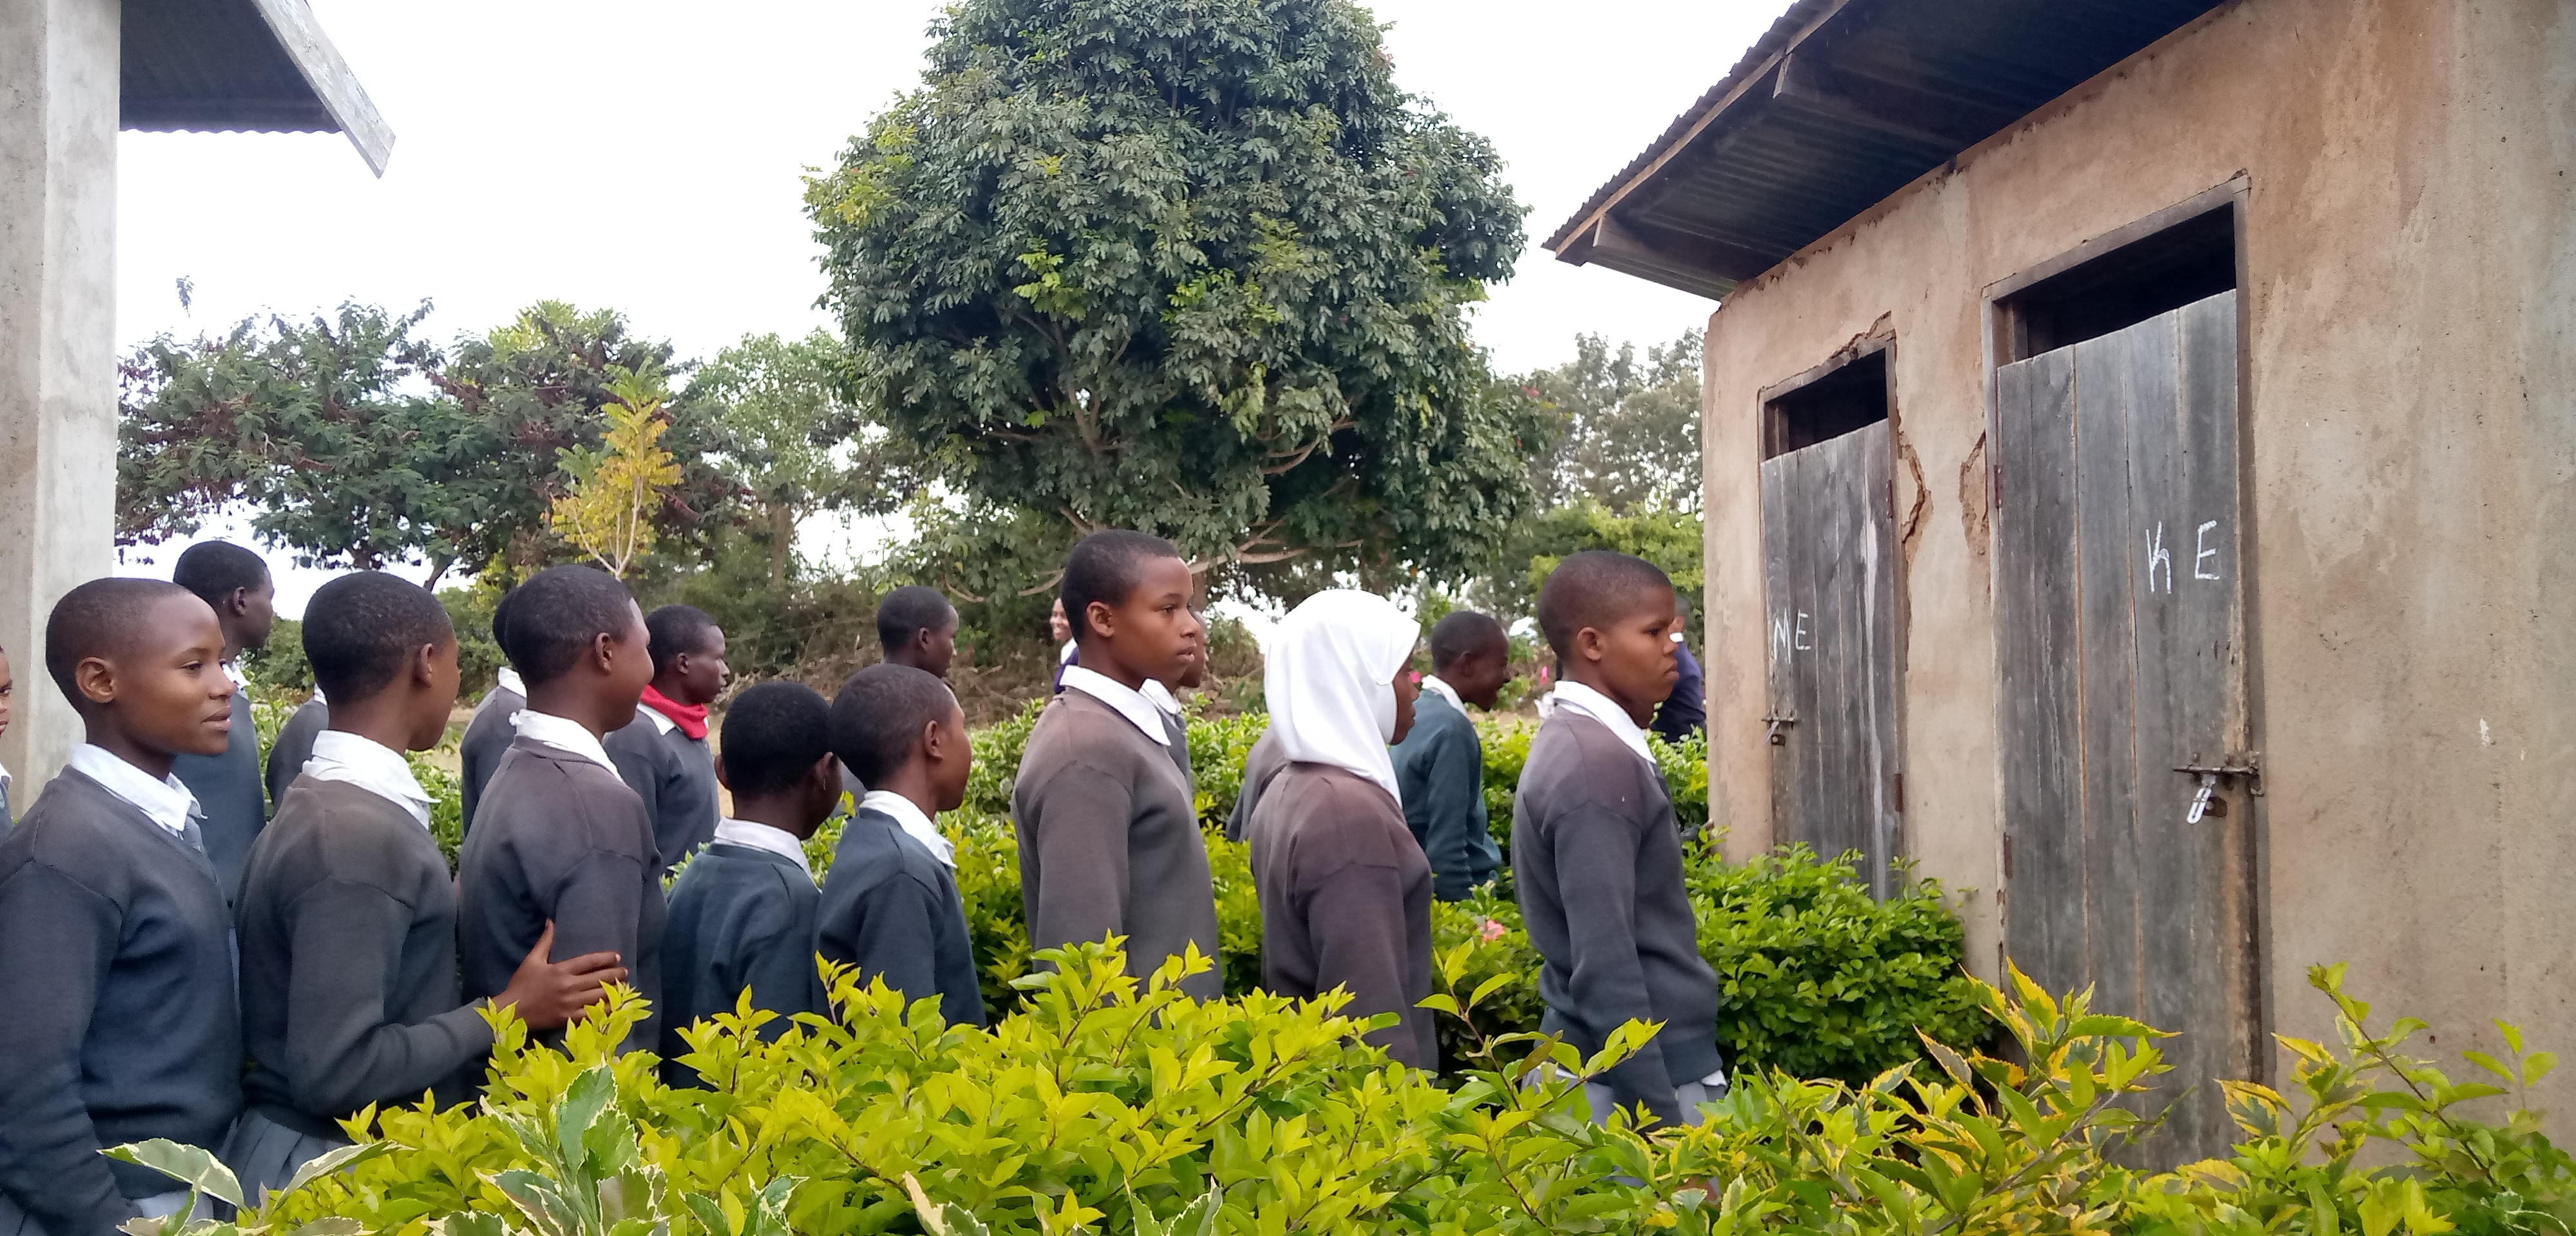 6.31 - Project 2021 - Tsaayo Secondary bathrooms-Students line up to enter bathrooms they share with teachers 06.jpg